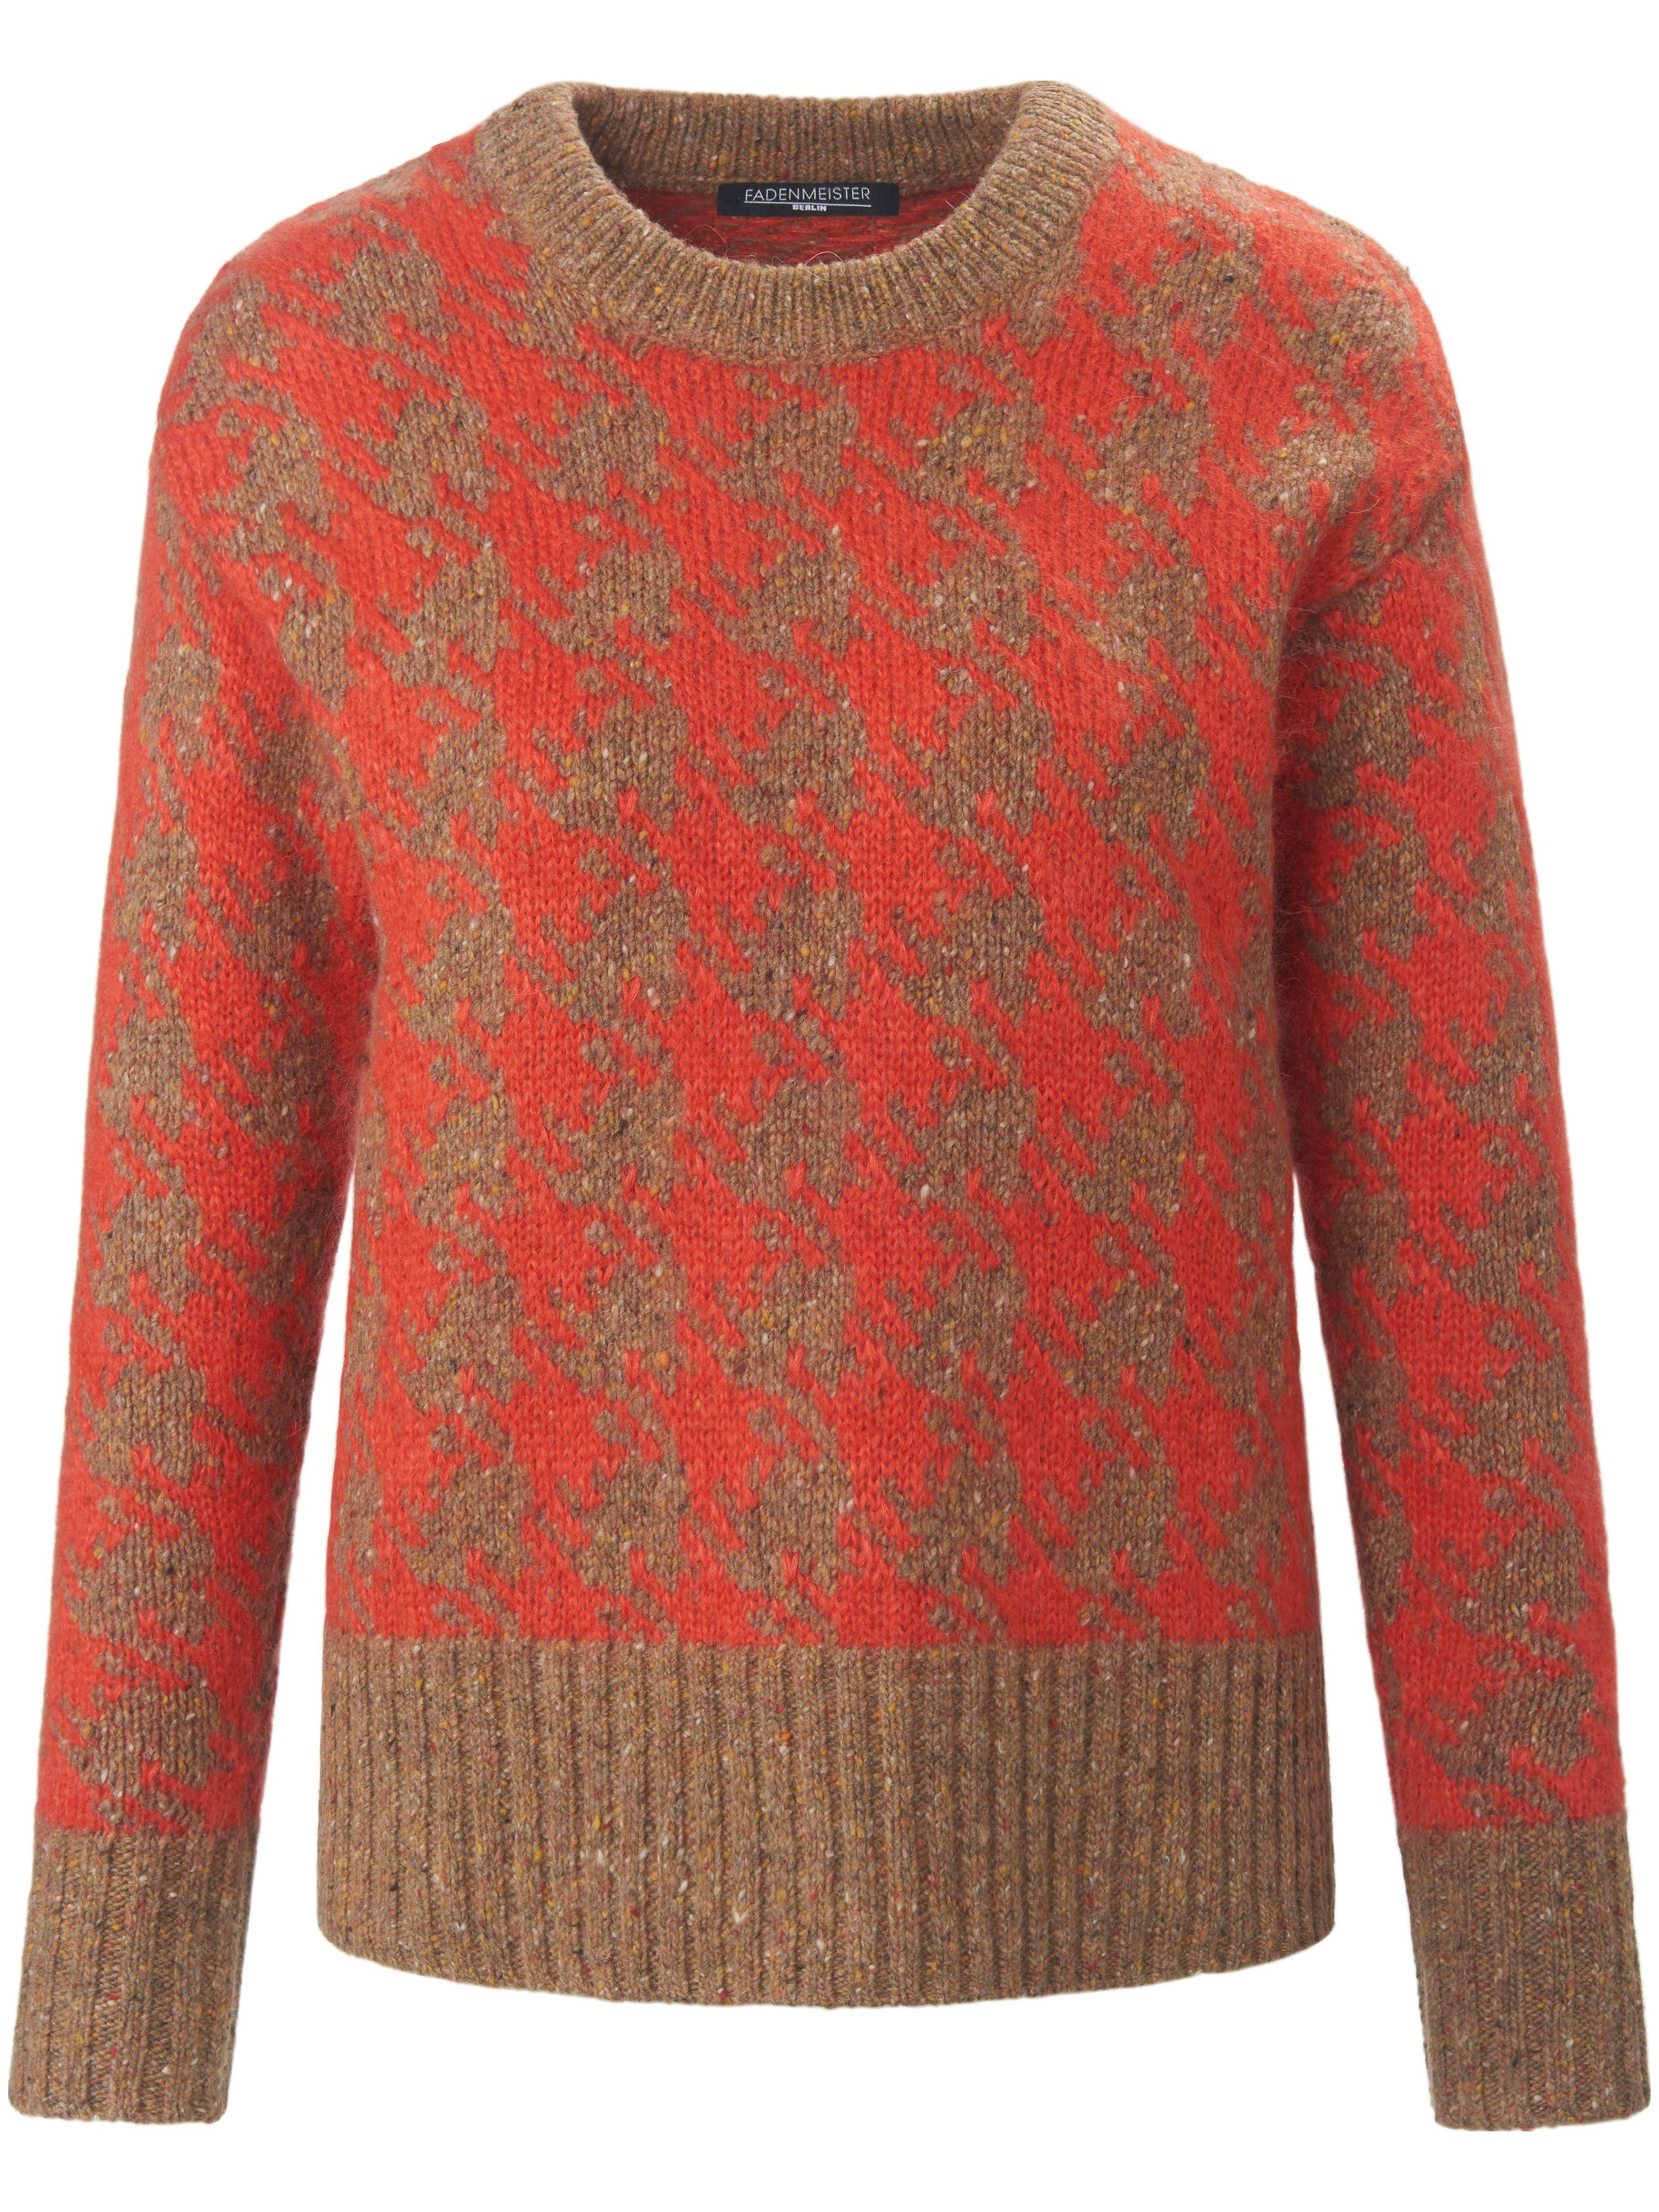 Round neck jumper long sleeves Fadenmeister Berlin red